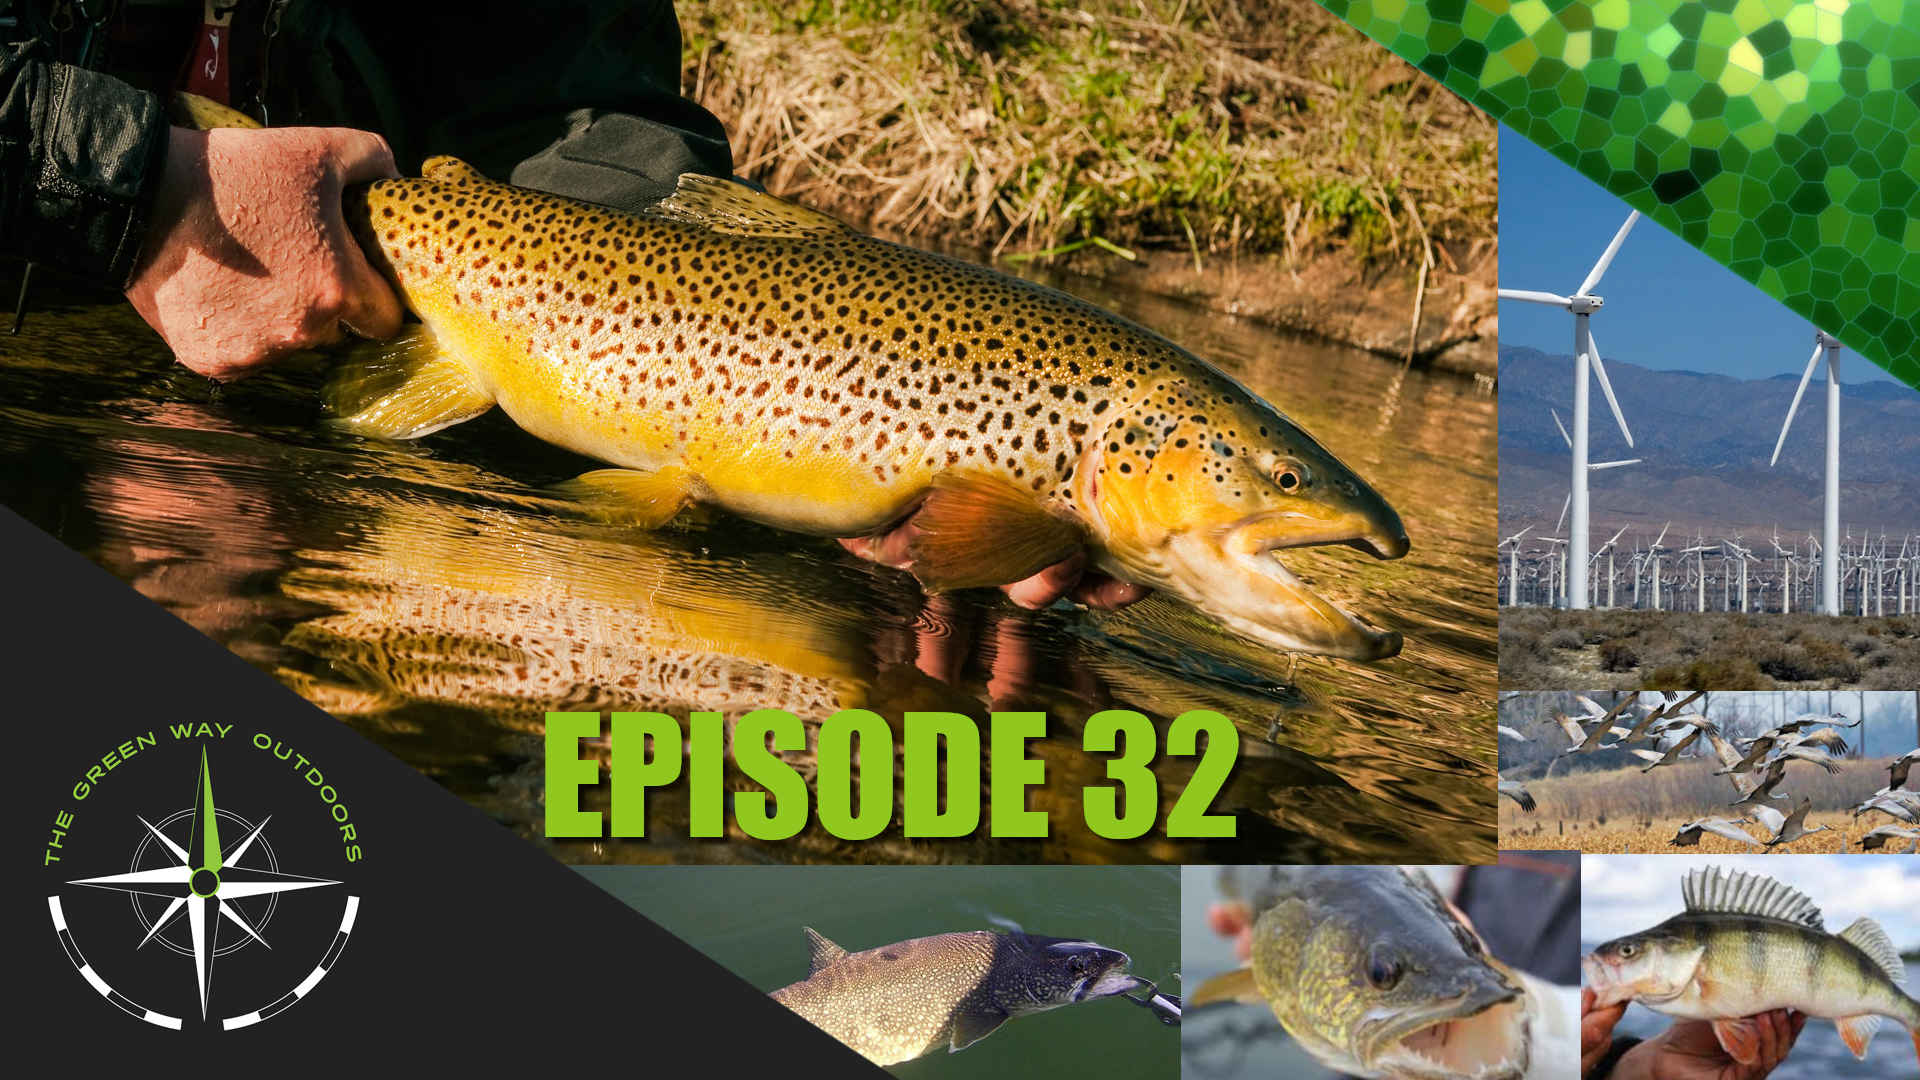 The Green Way Outdoors - Episode 32 - Value of Fish